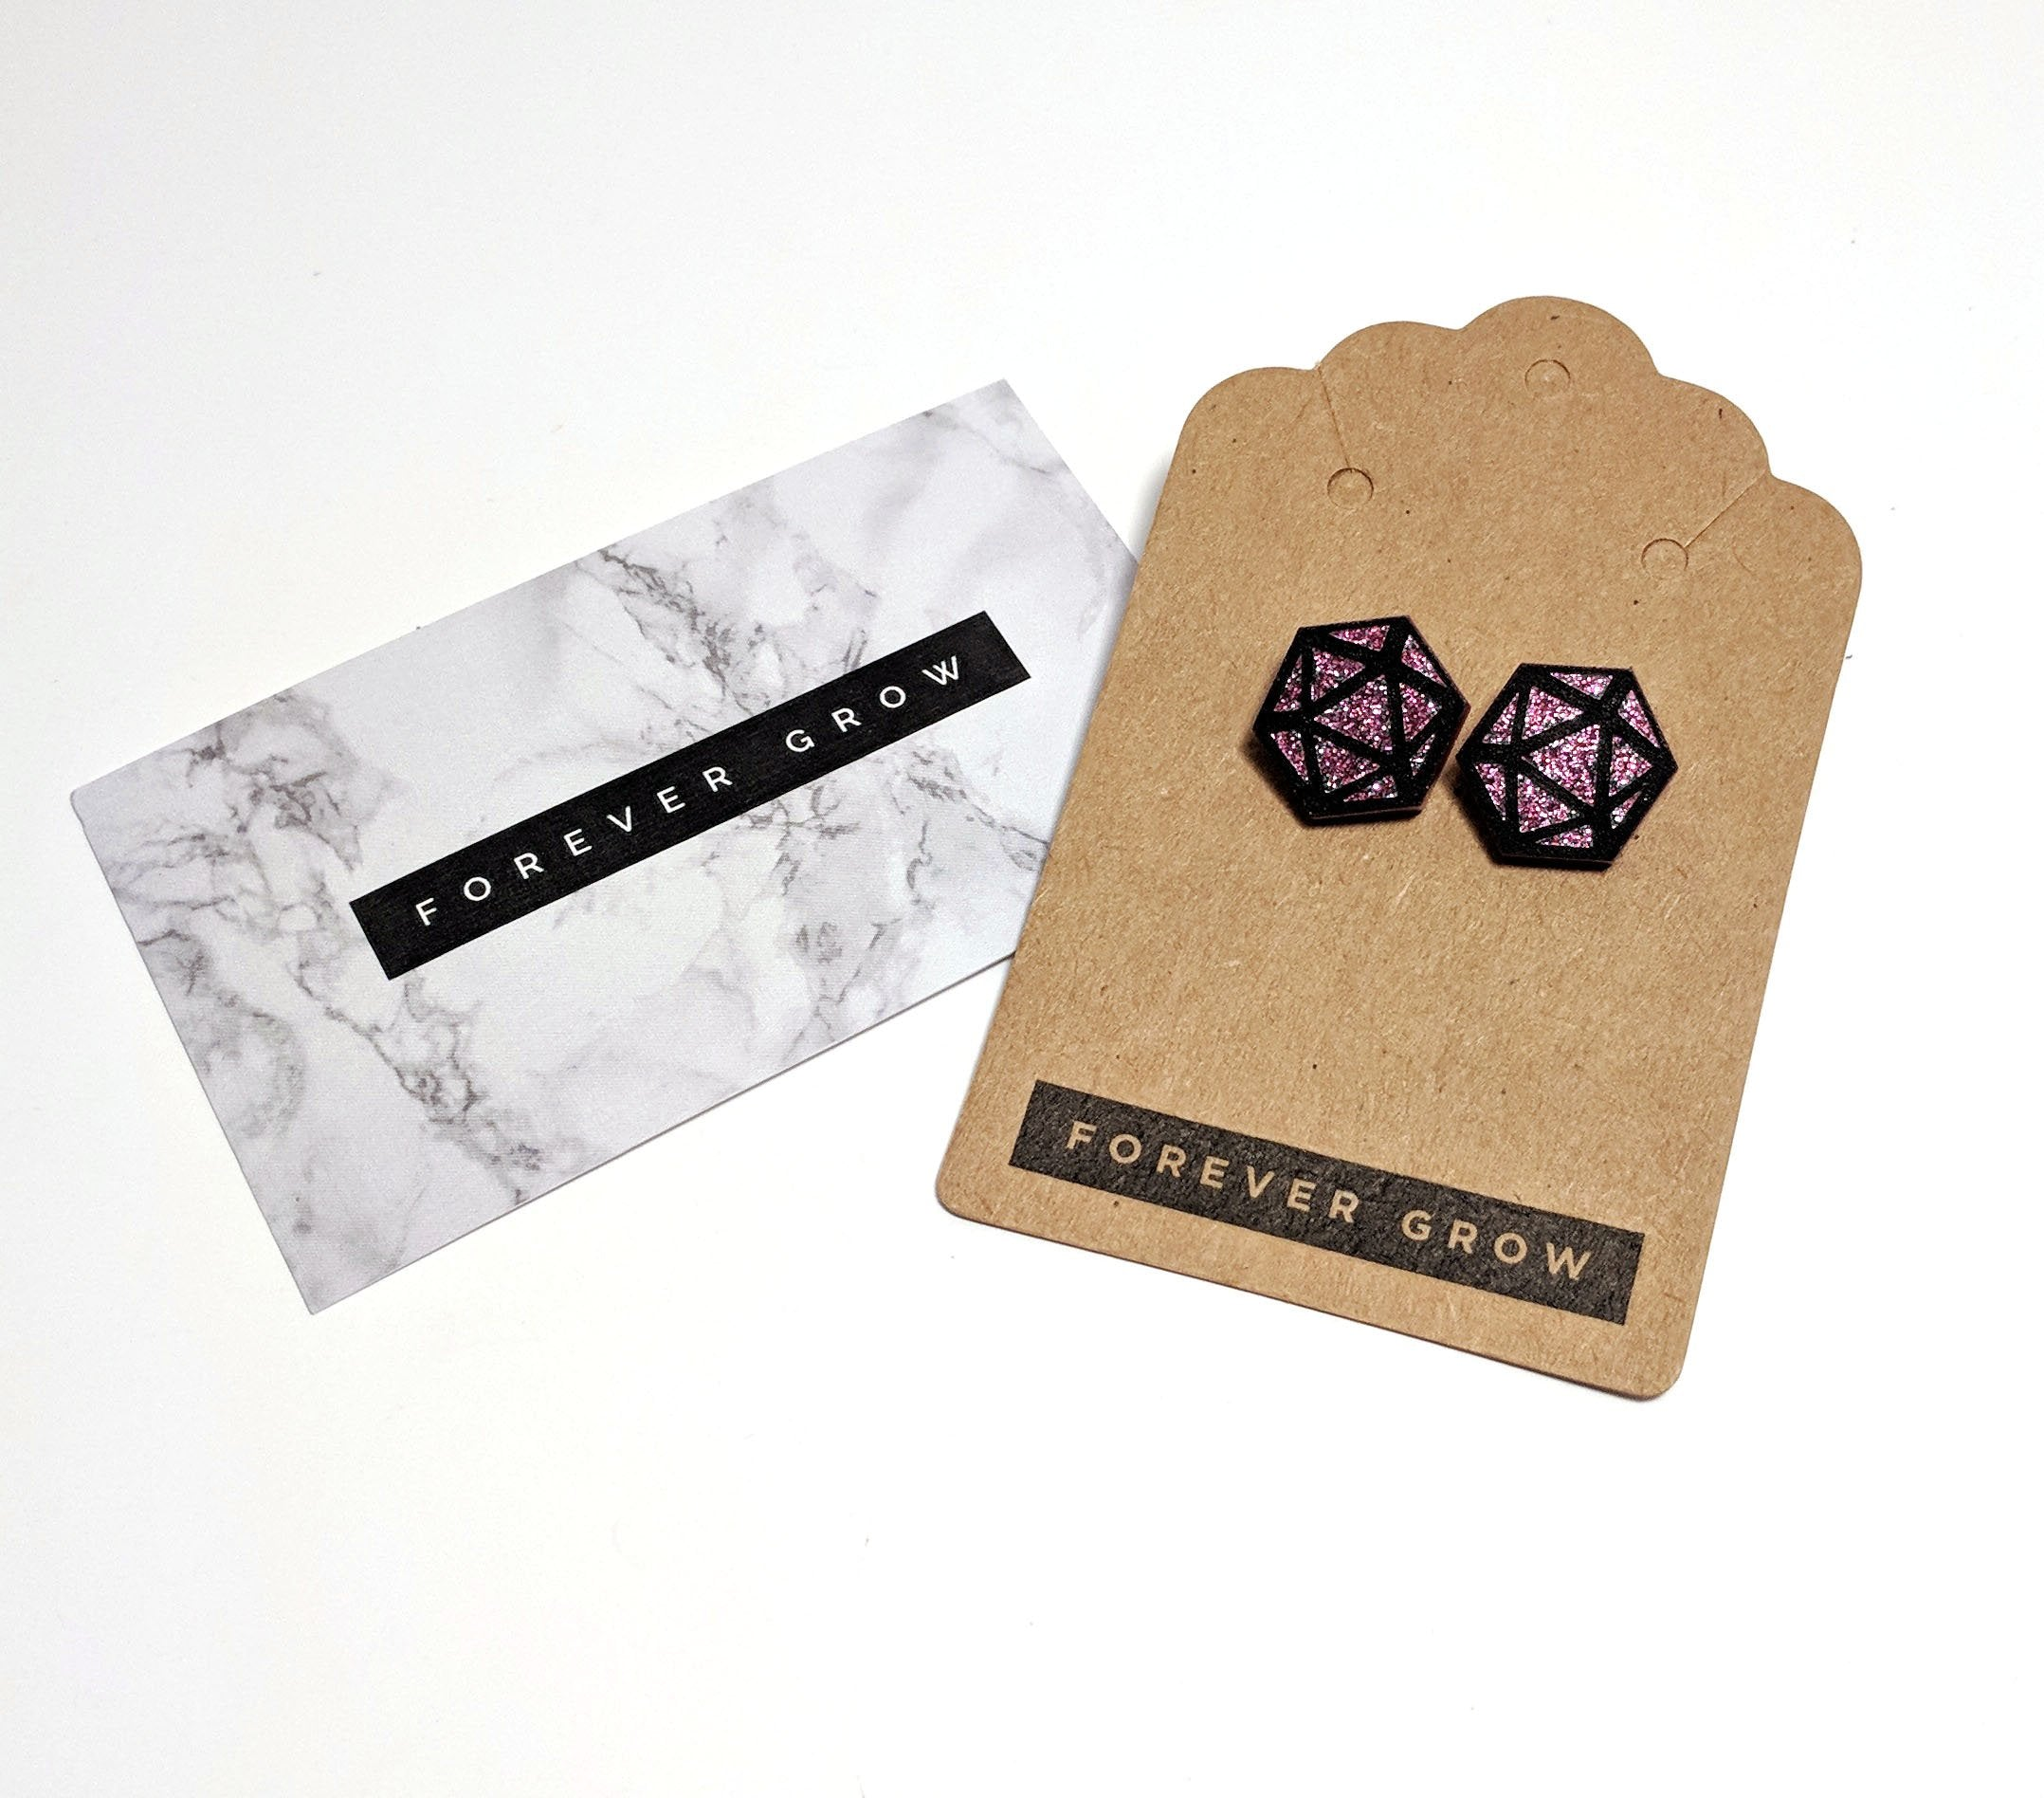 D20 Stud Earrings by Forever Grow